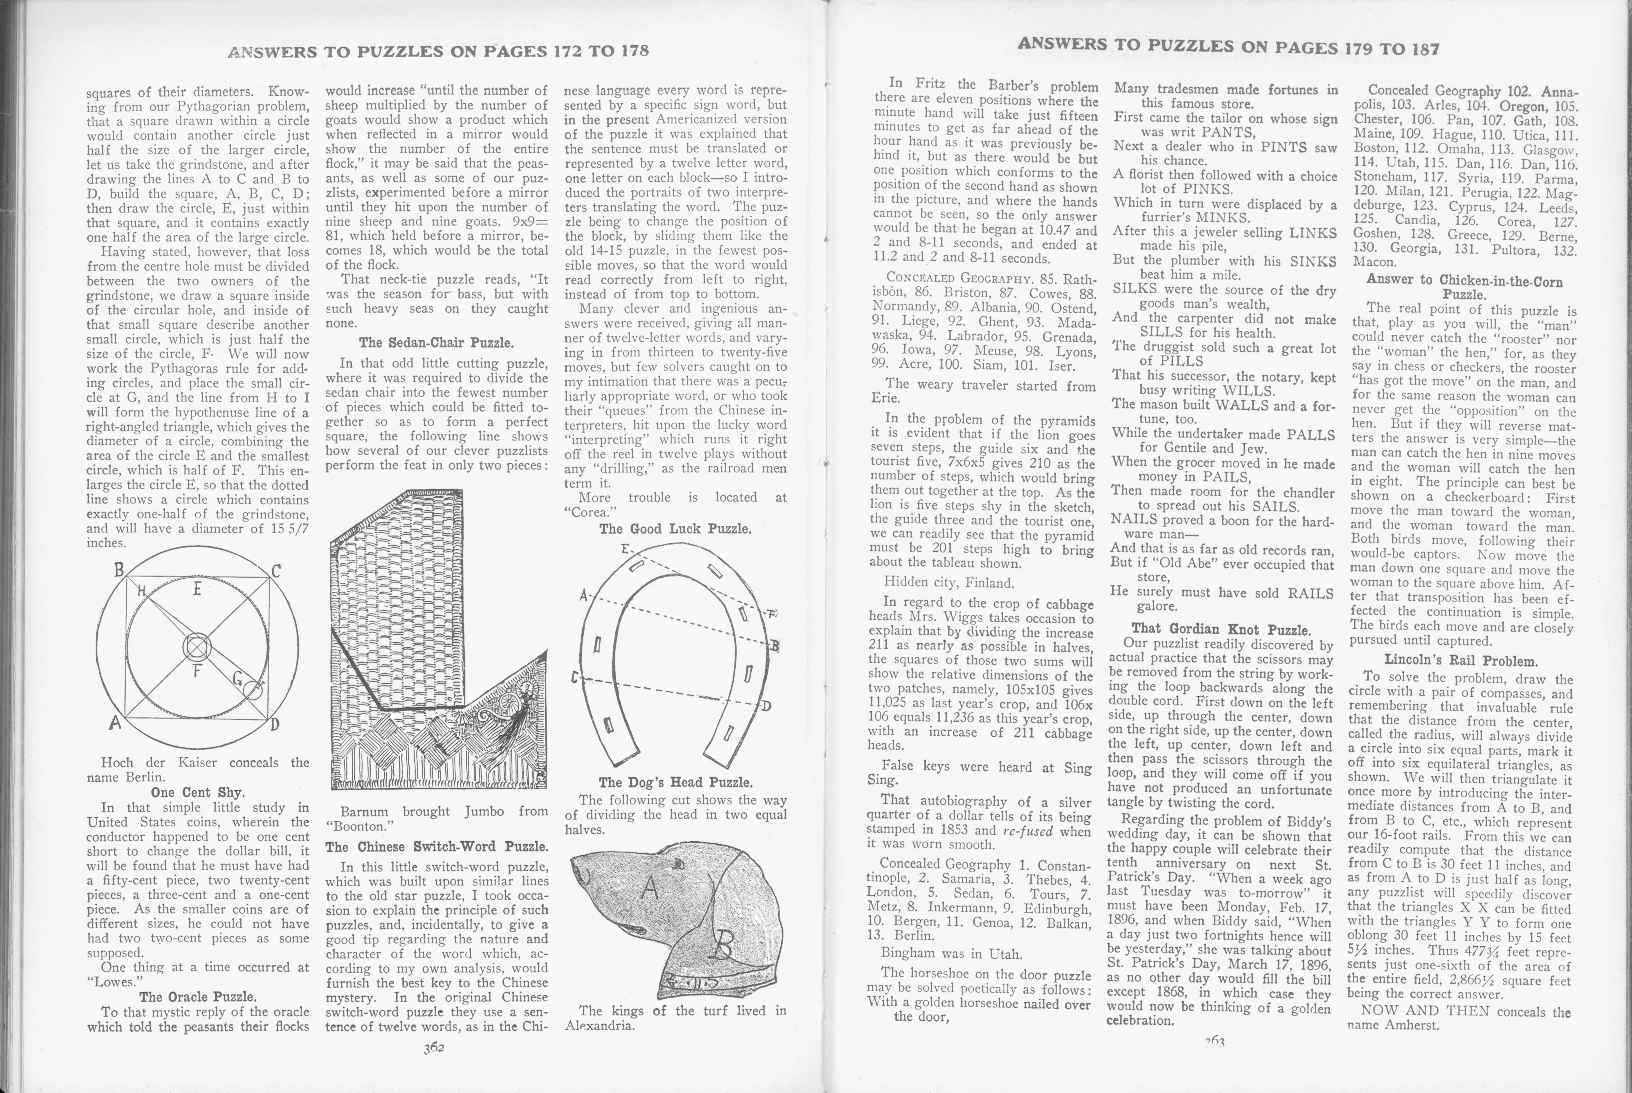 Sam Loyd - Cyclopedia of Puzzles - page 362-363